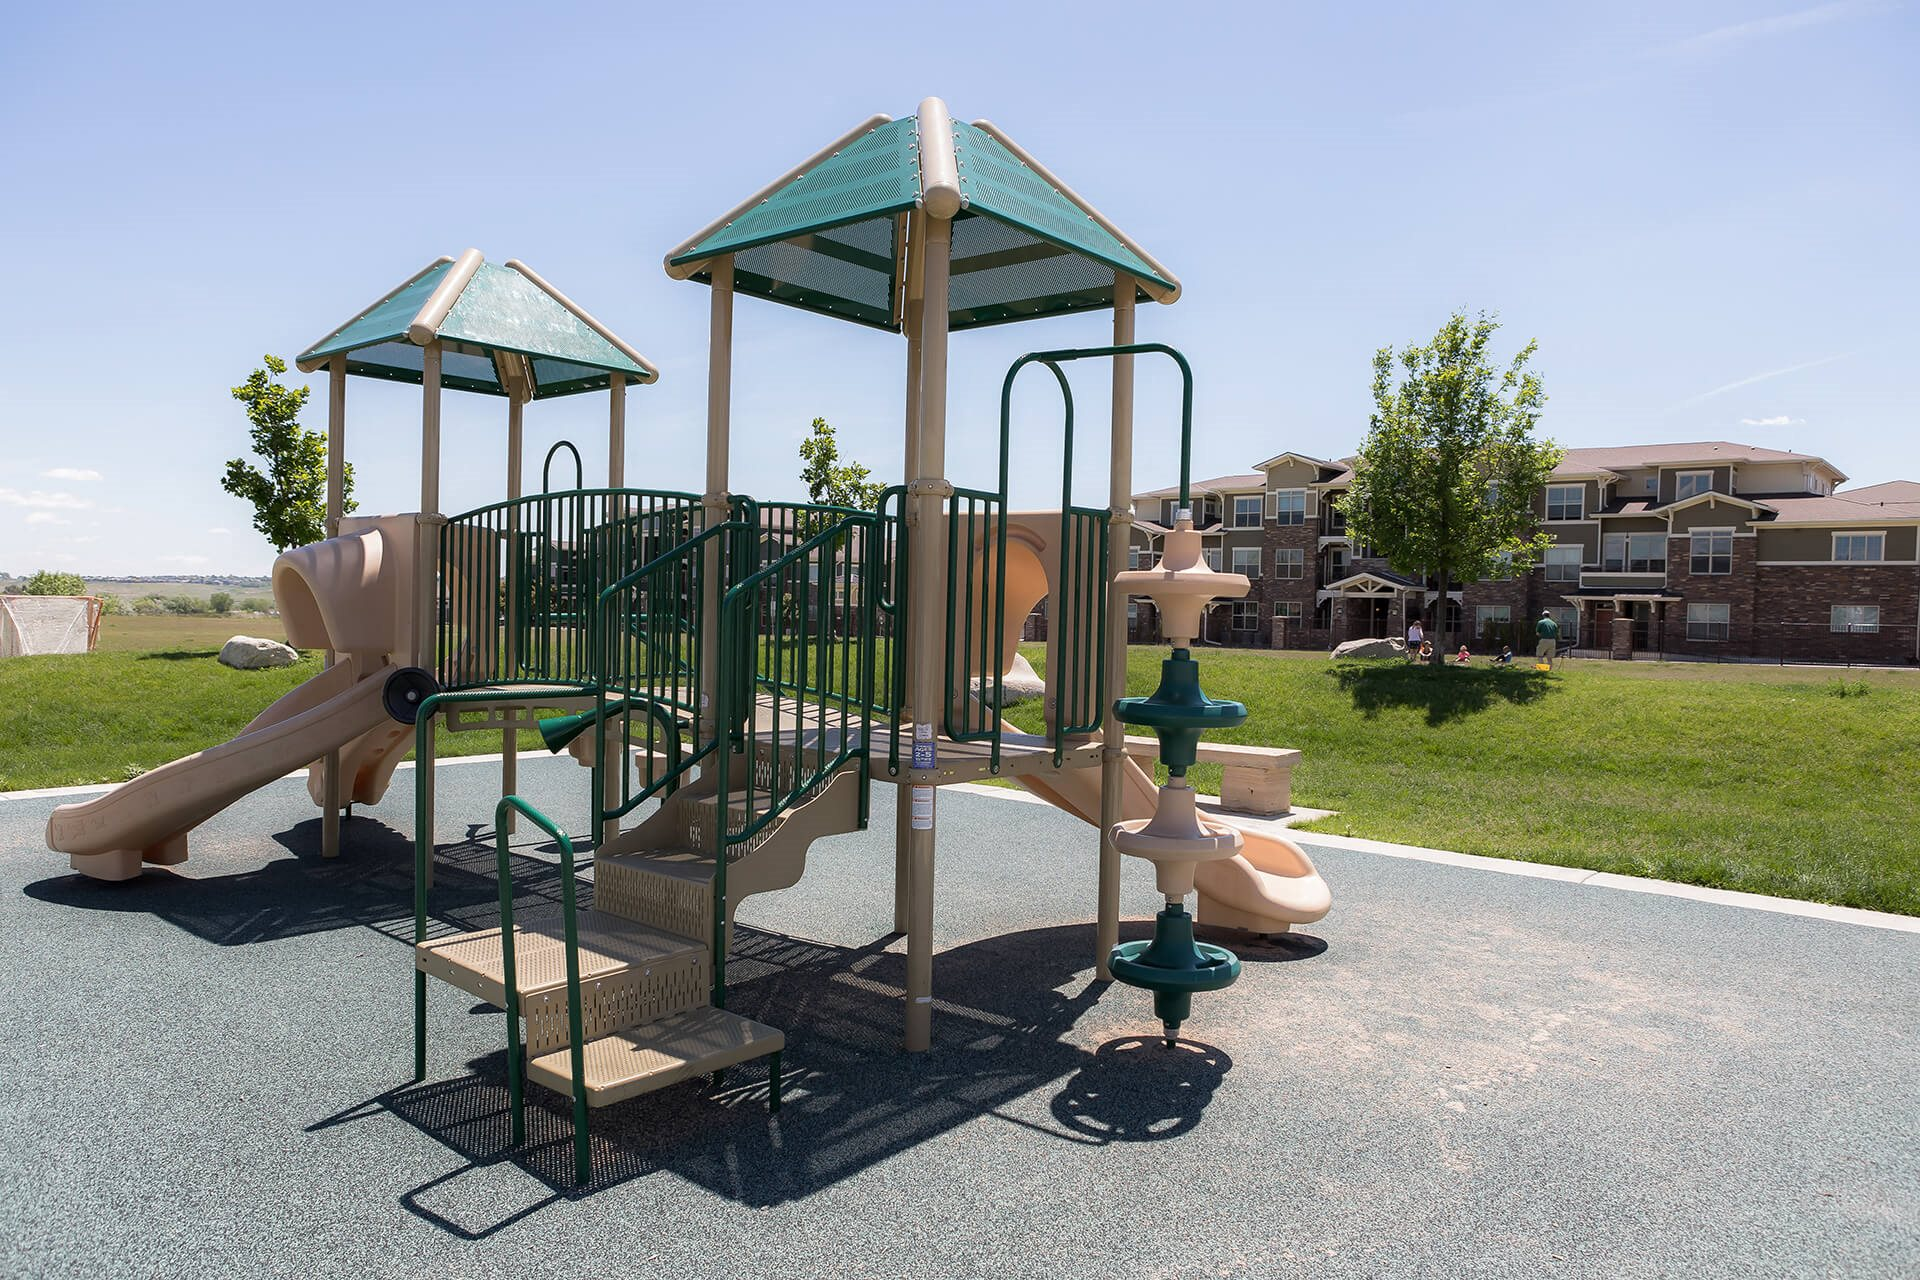 Amazing Outdoor Playground near Retreat at the Flatirons, 13780 Del Corso Way, Broomfield